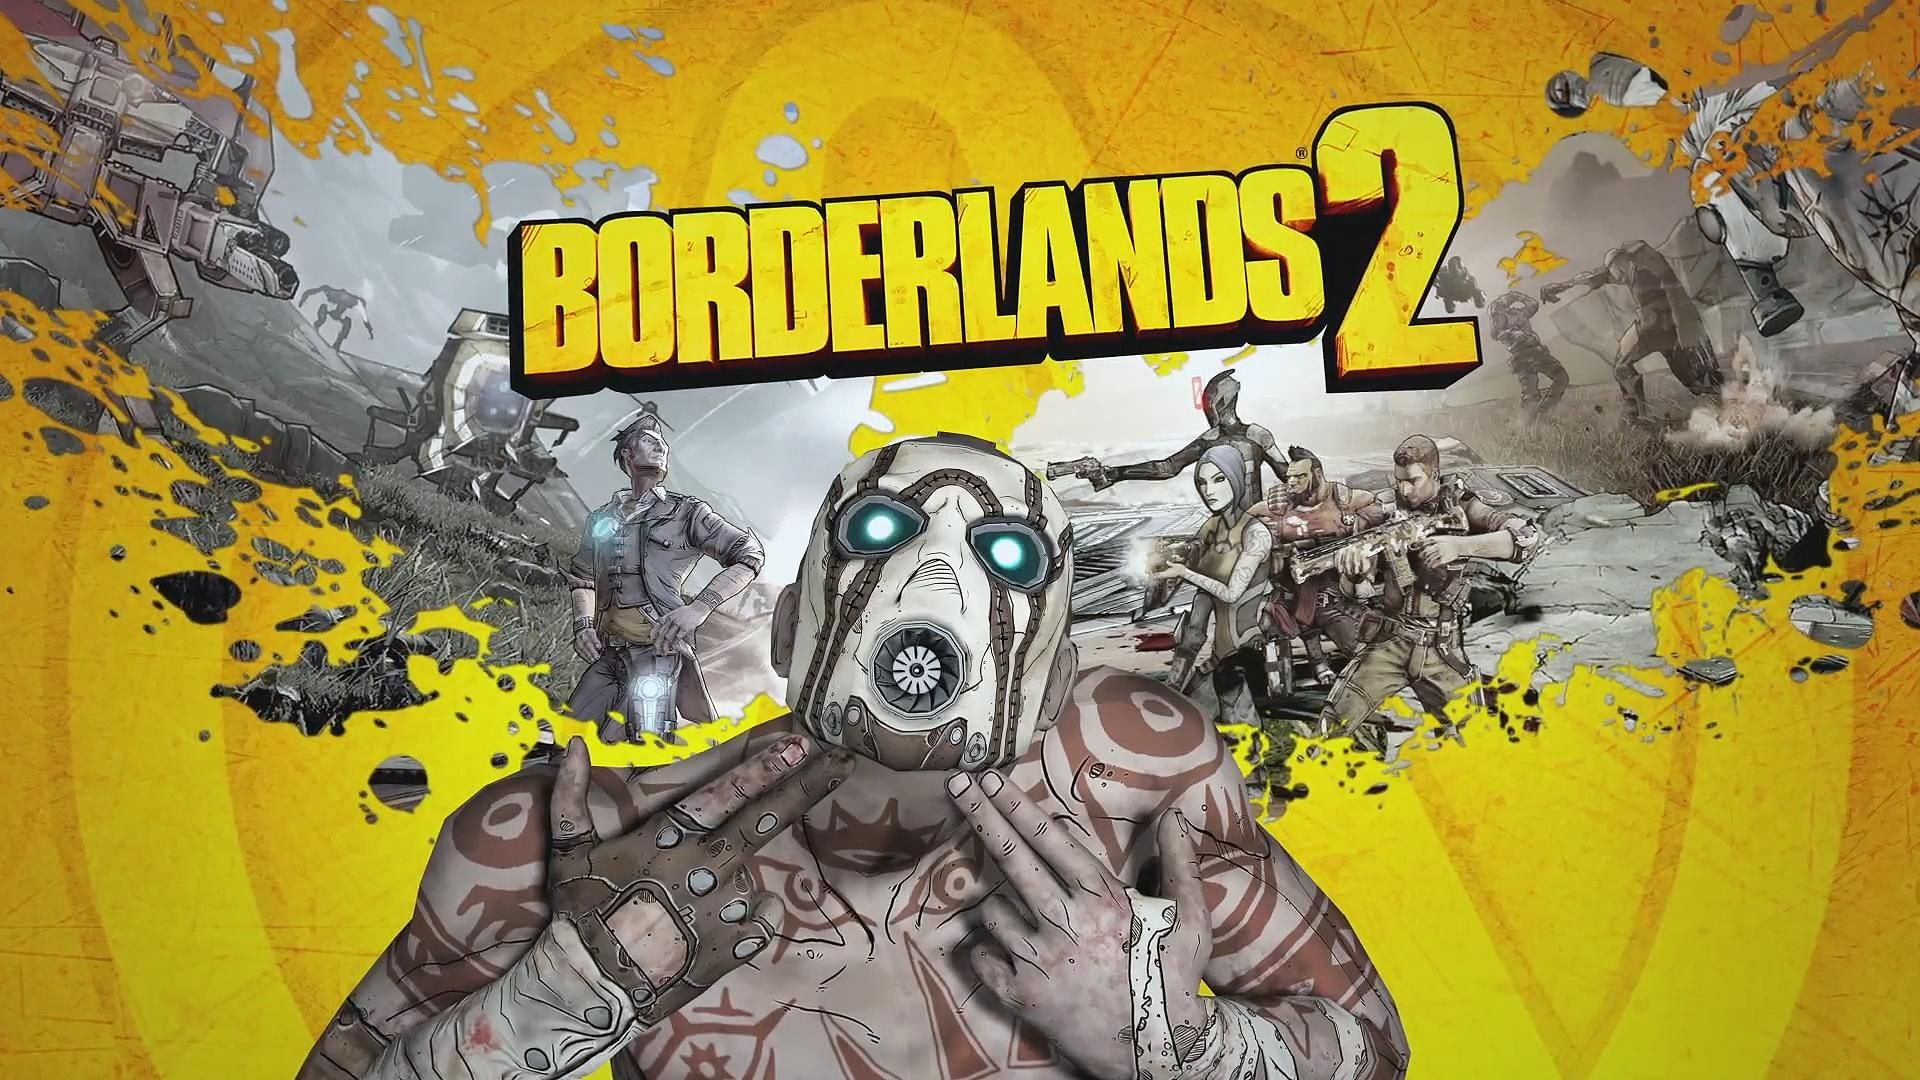 free download 45 borderlands 2 100% quality hd wallpapers of 2016